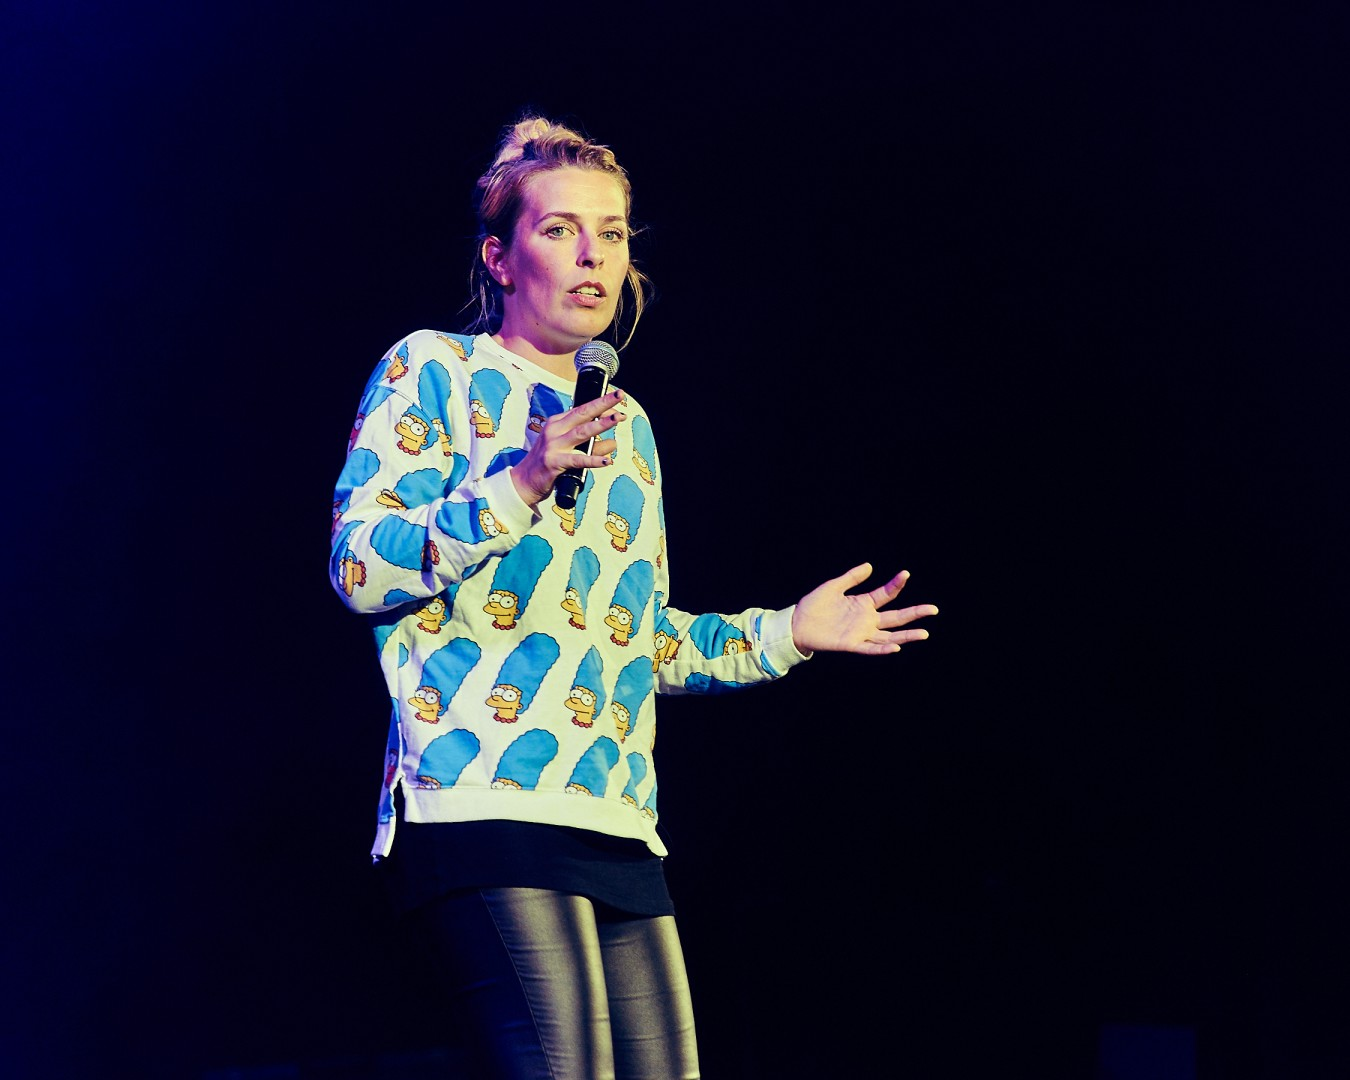 Sara Pascoe at The Invisble Dot